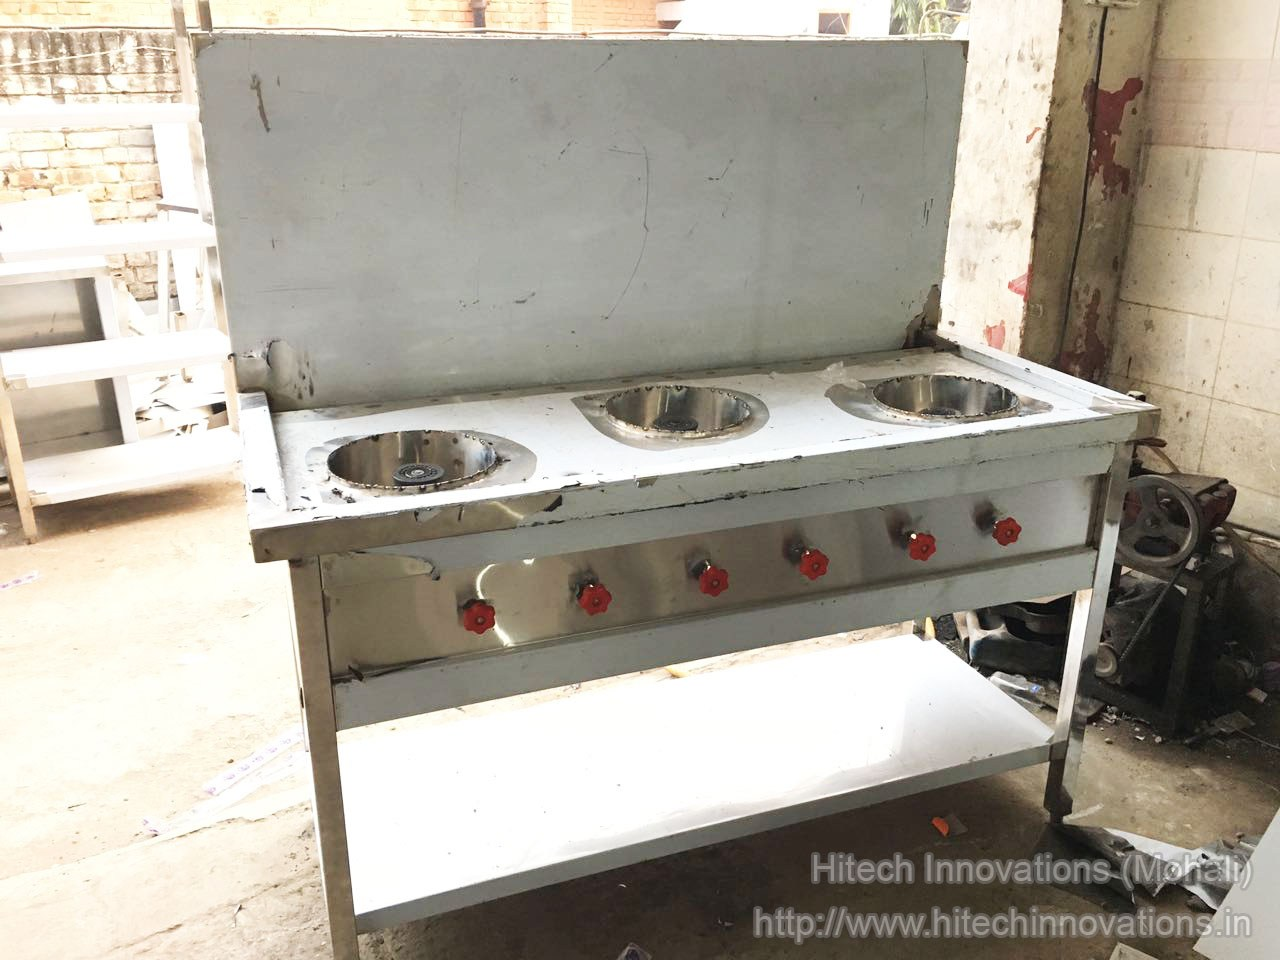 Three Burner Stove for Commercial Kitchen at our Factory